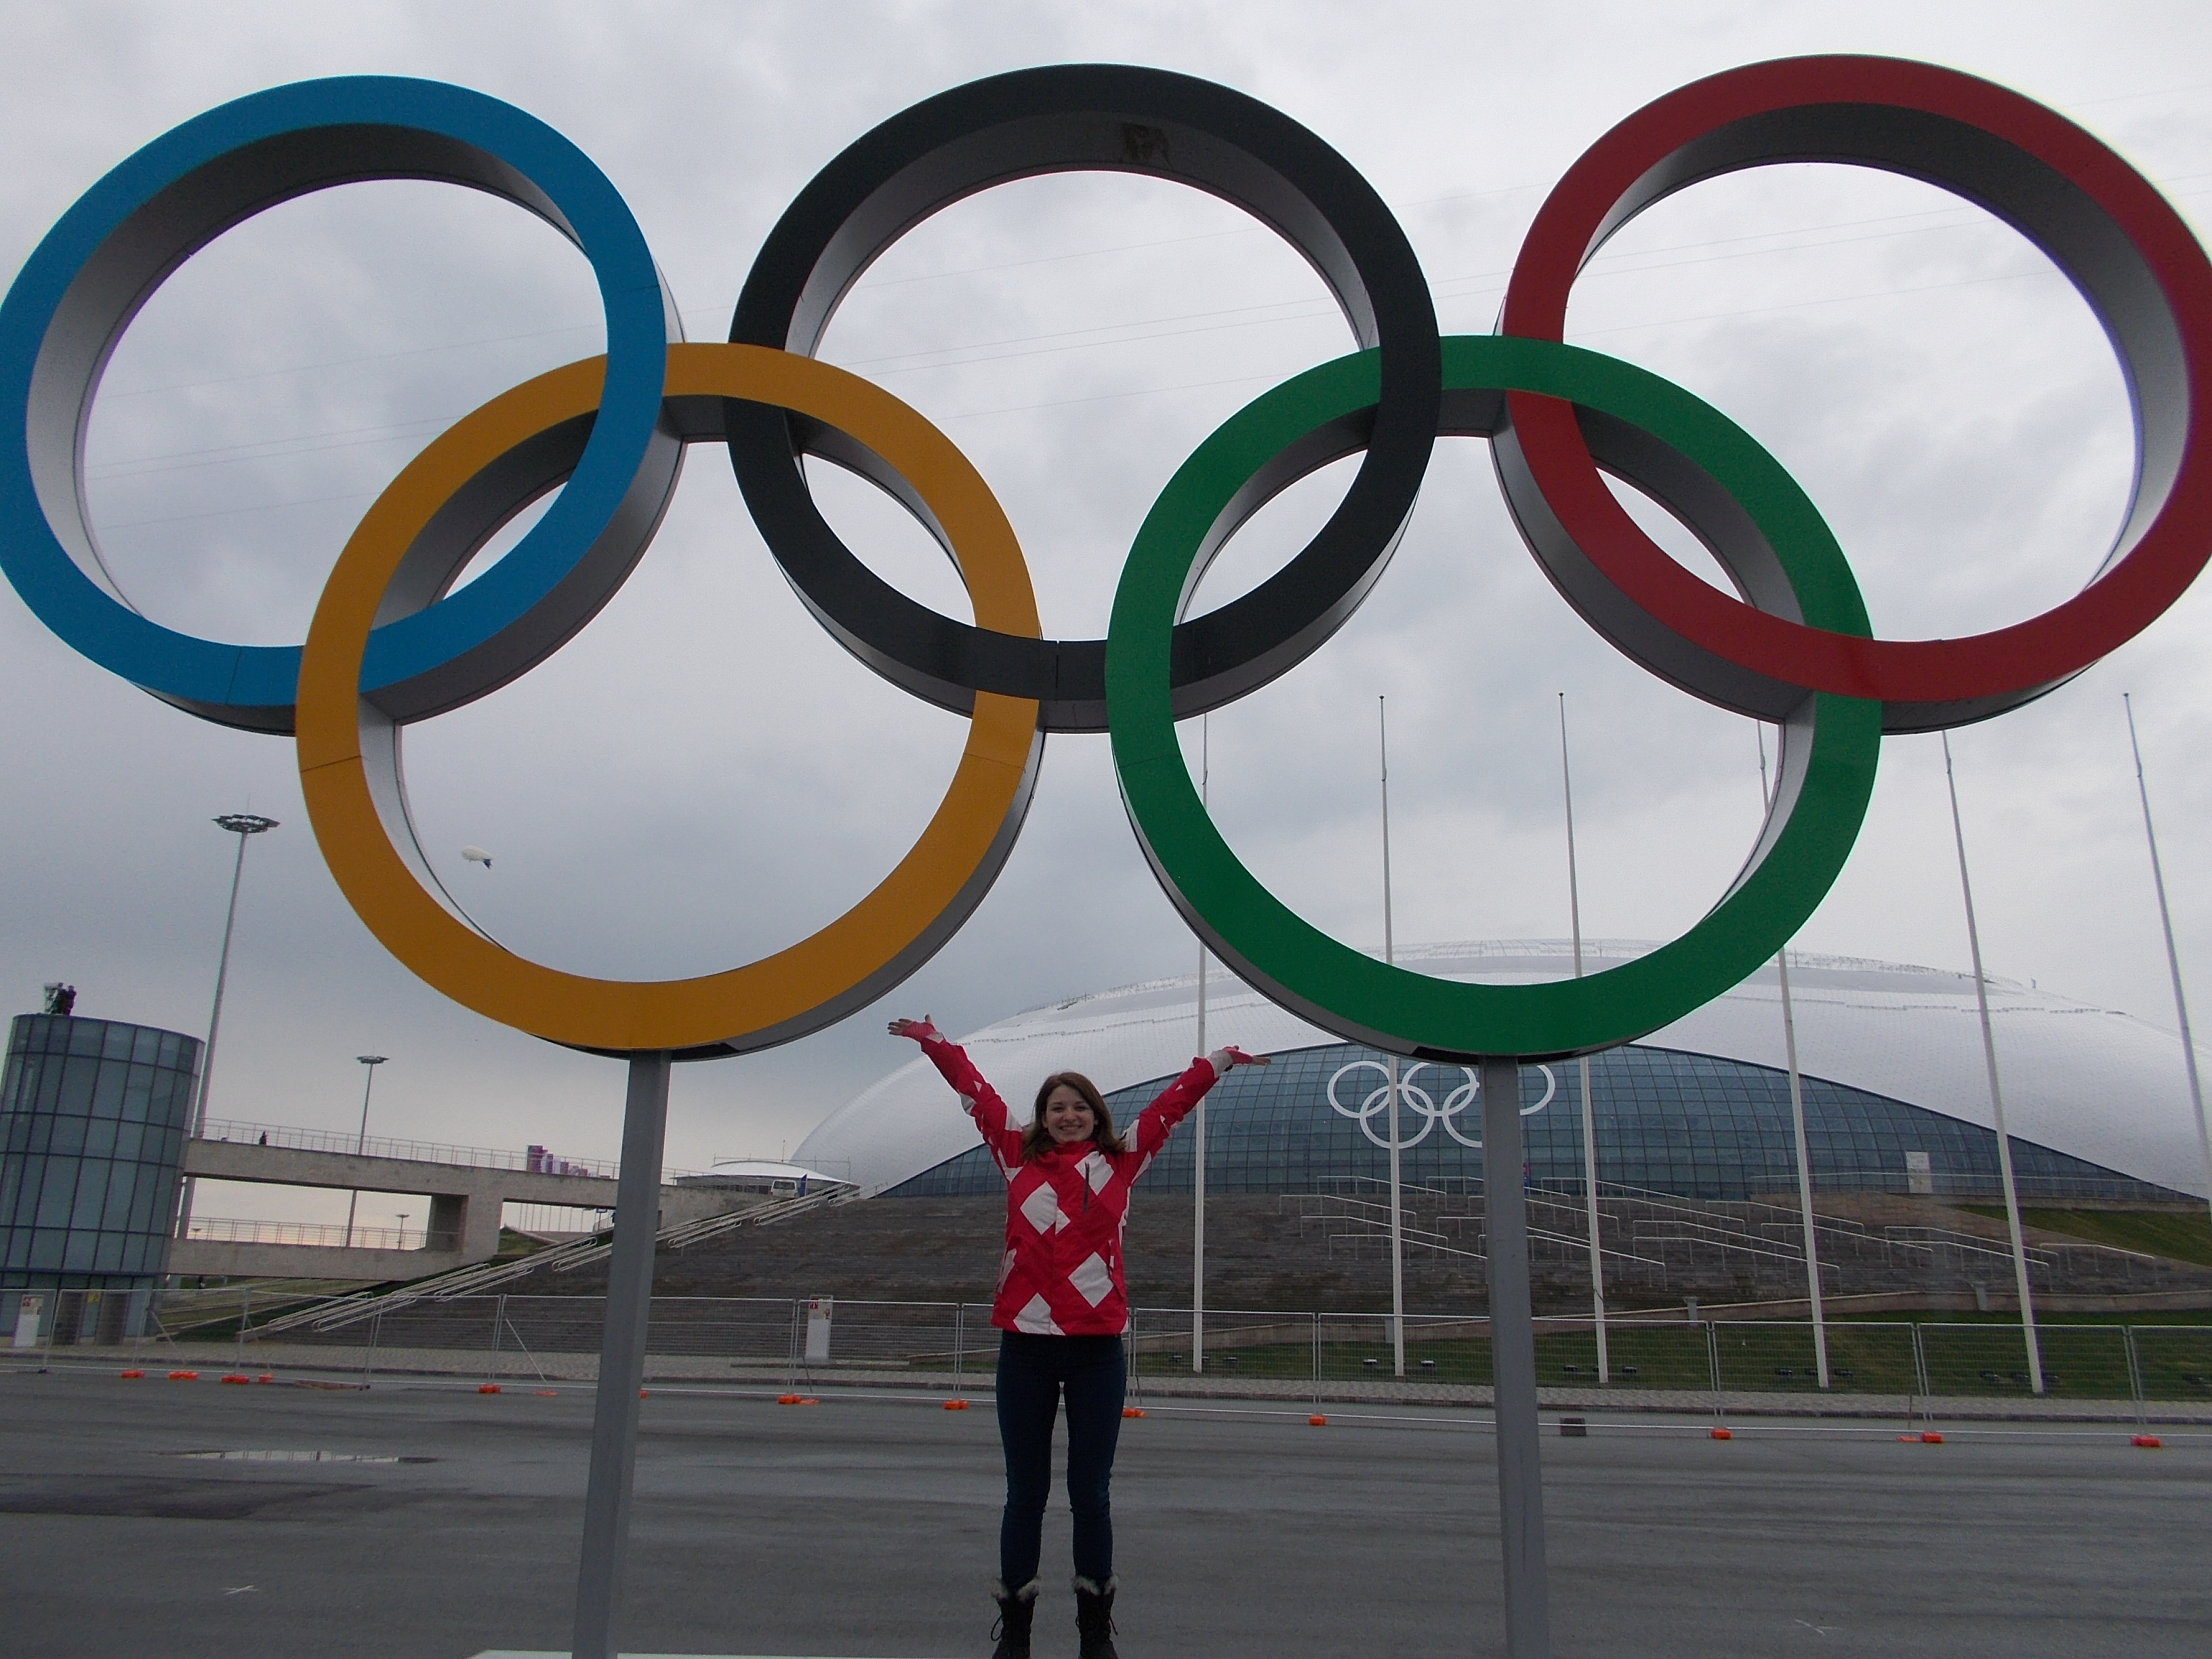 Angi with the Olympic Rings